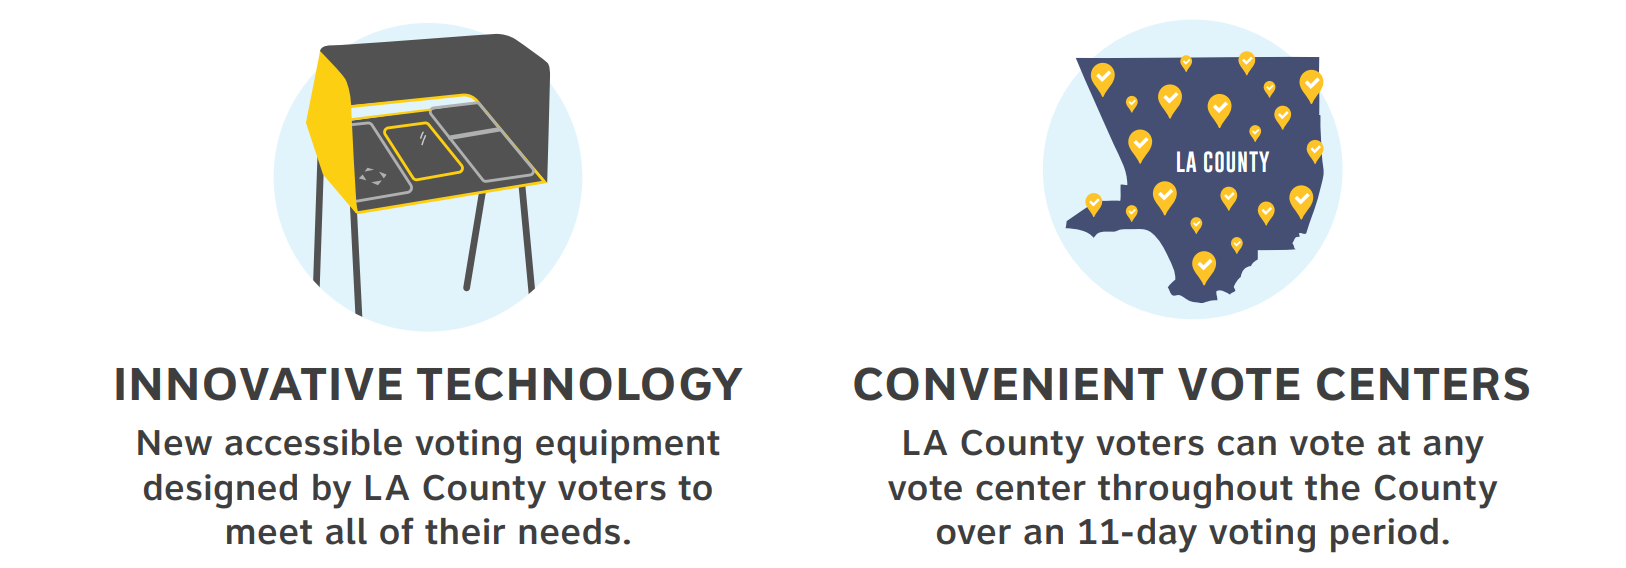 Innovative Voting Equipment Technology and Convenient Vote Centers for L.A. County